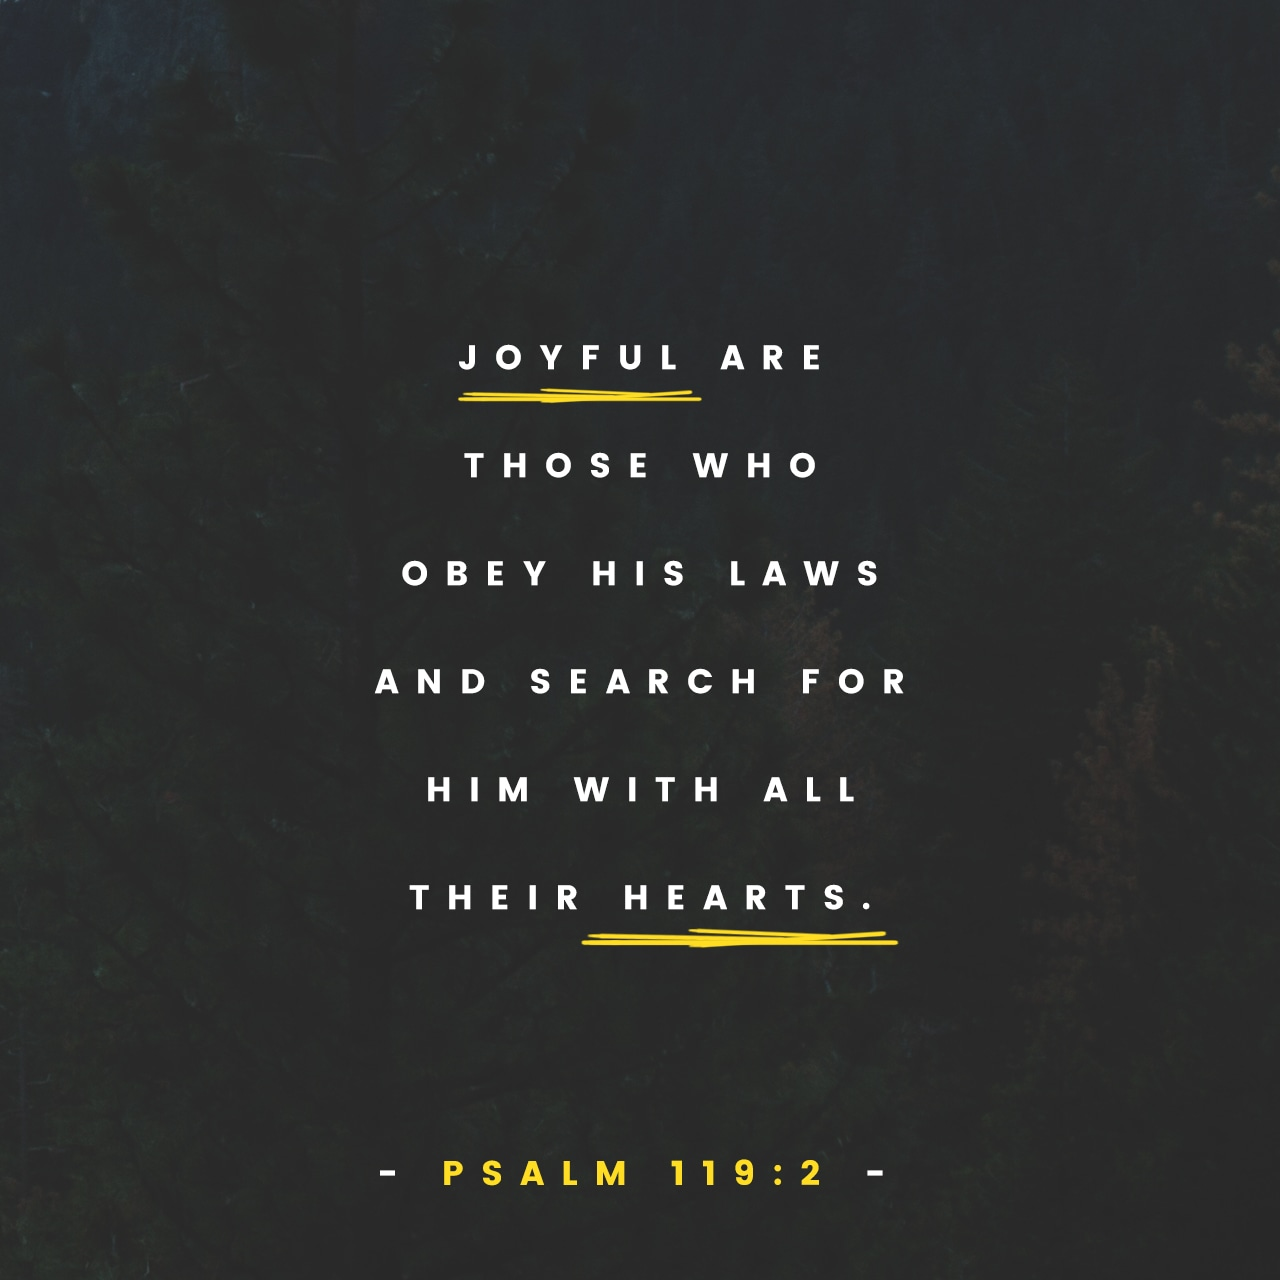 ScriptureArt_0717_-_Psalm_119_2_NLT_English.jpg